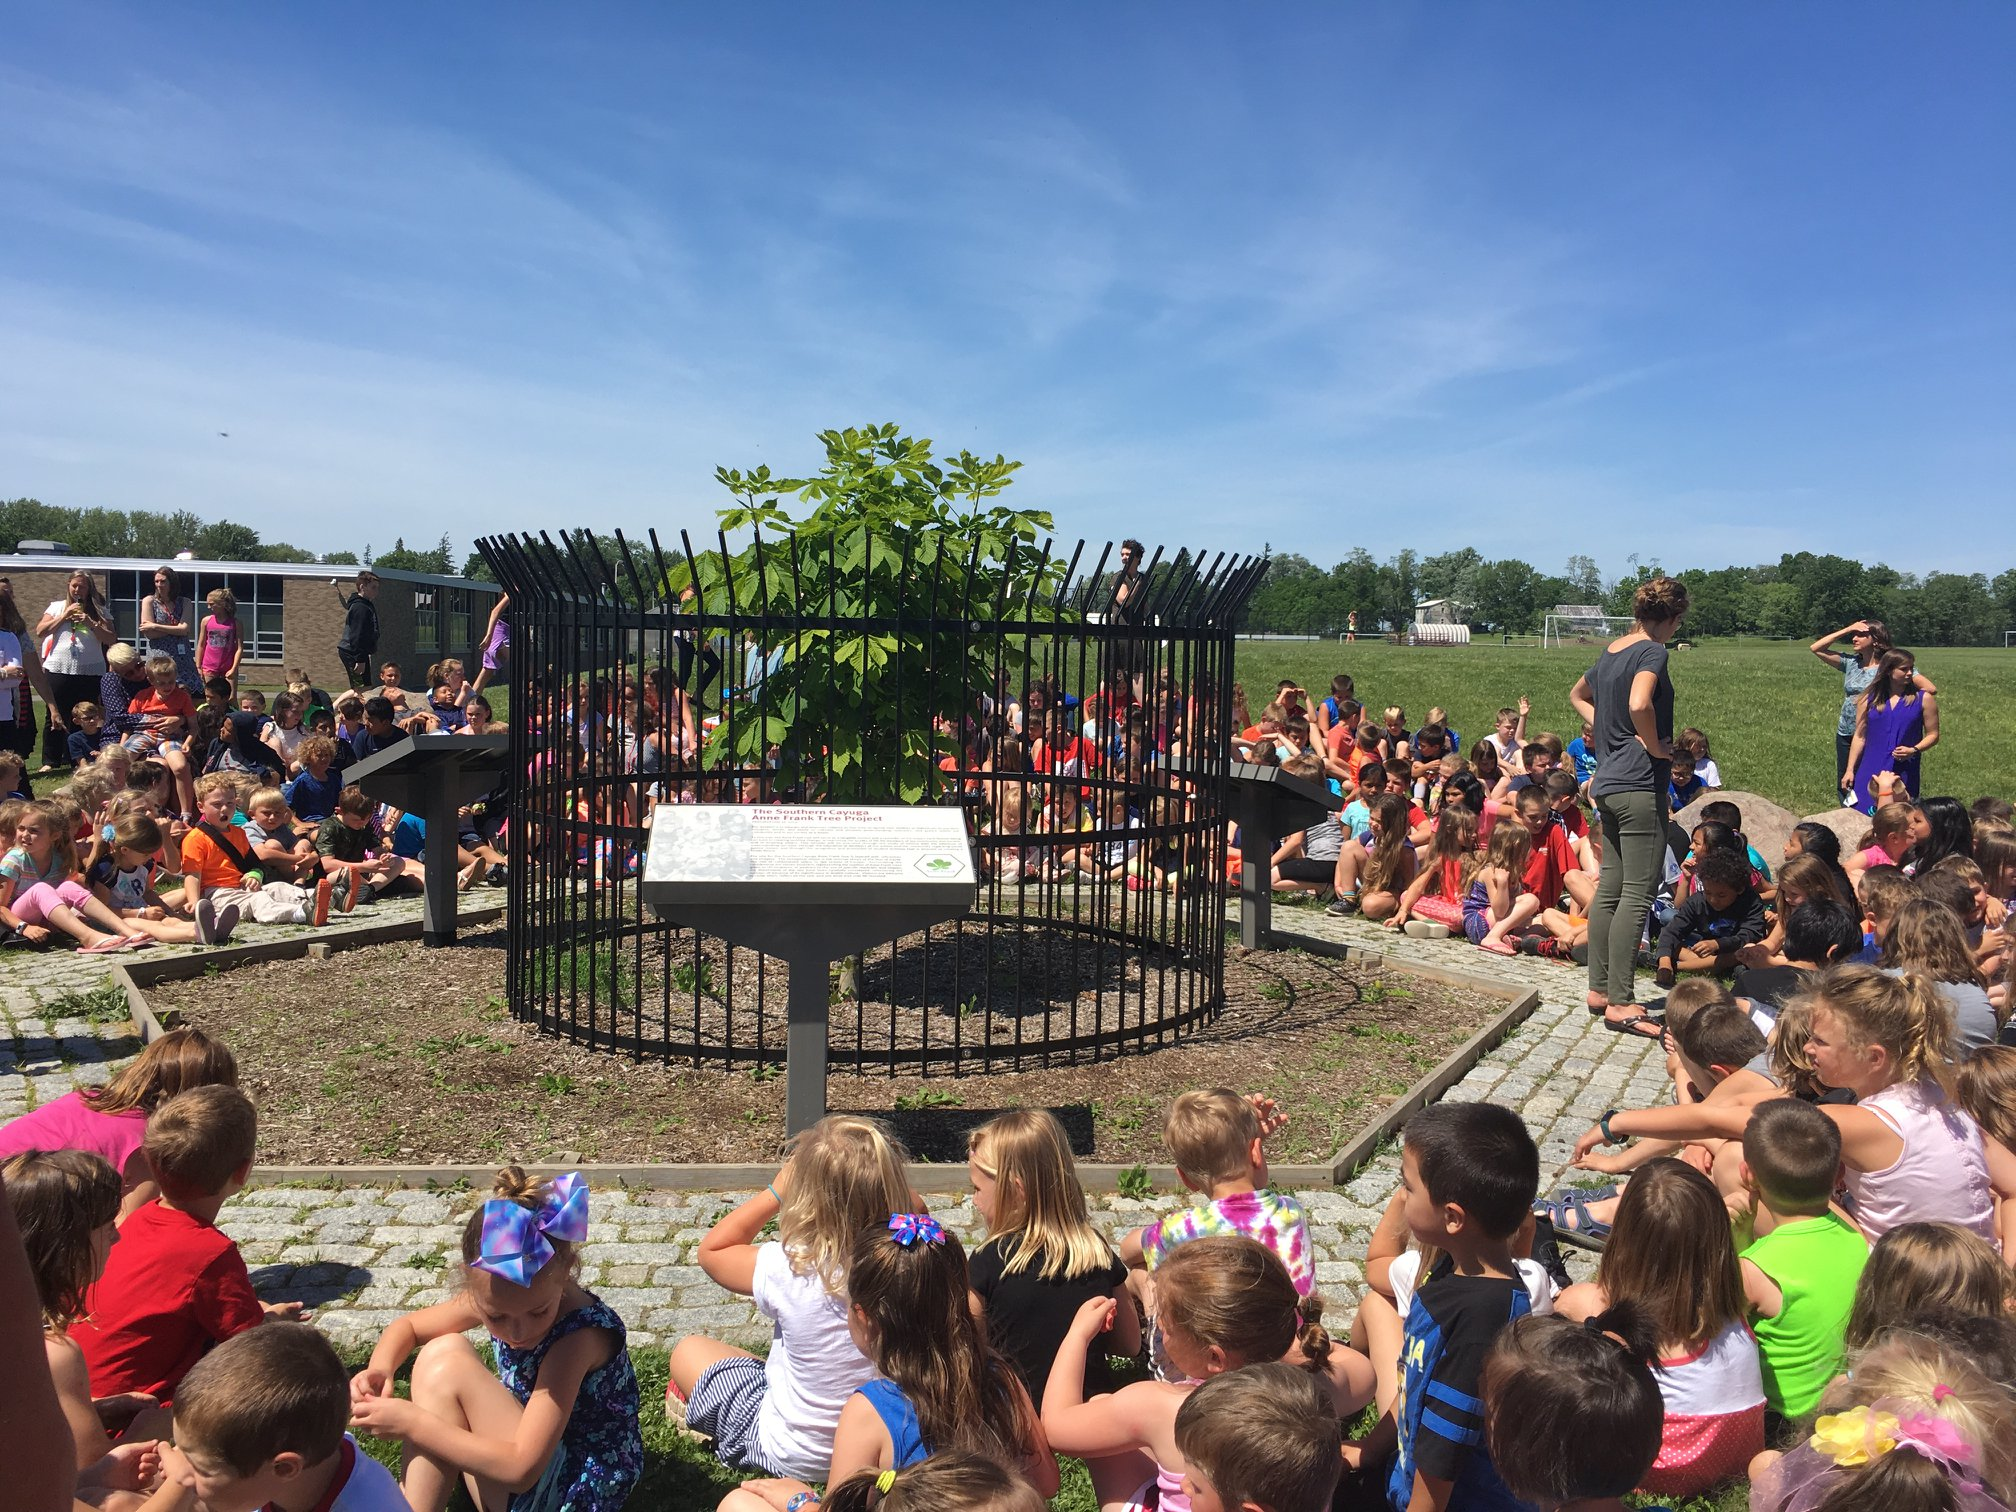 Children in Cayuga, New York, celebrate Anne Frank's 89th birthday in 2018 around Annie.